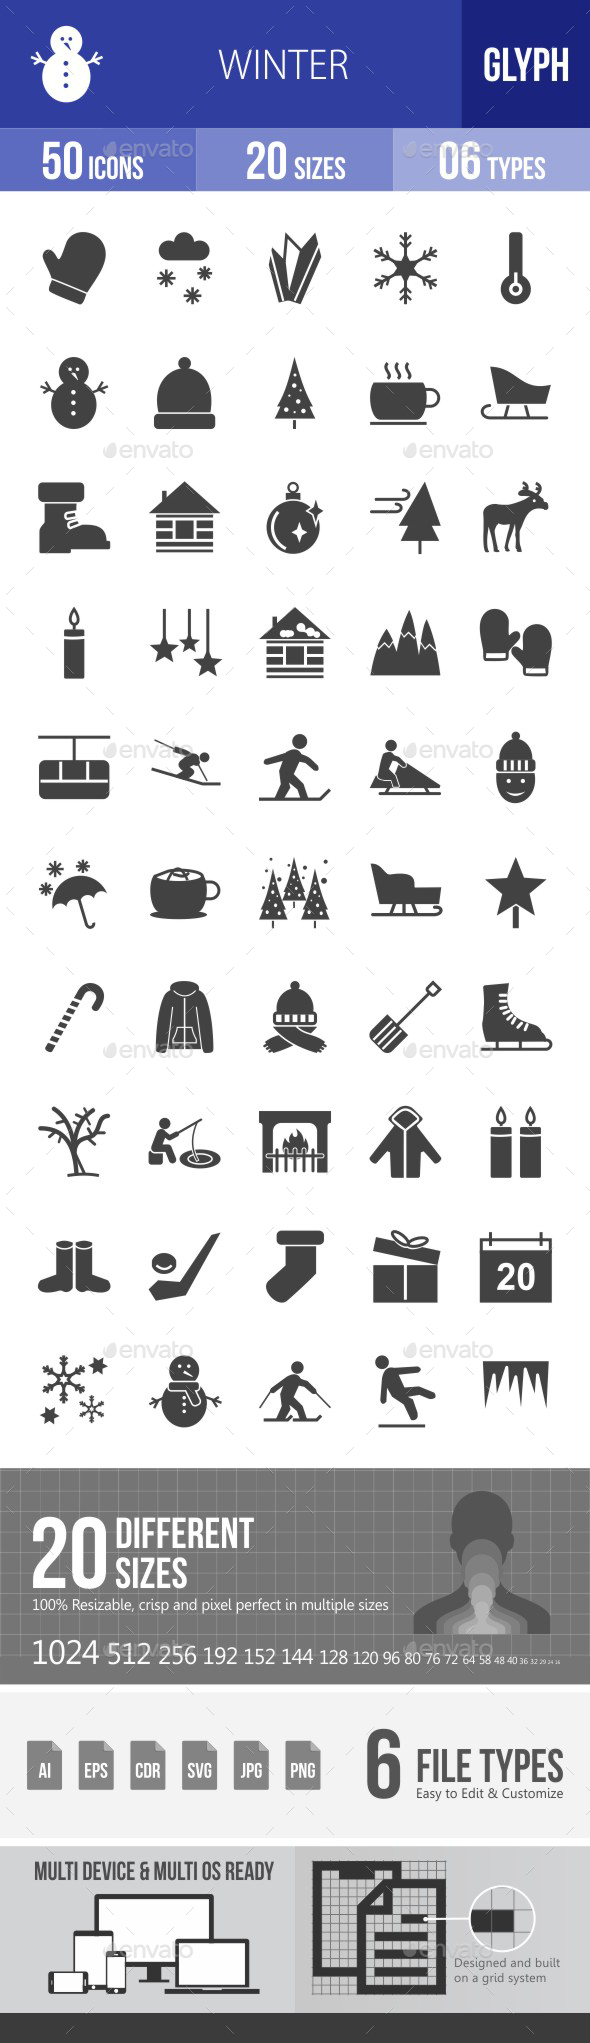 Winter Glyph Icons - Icons